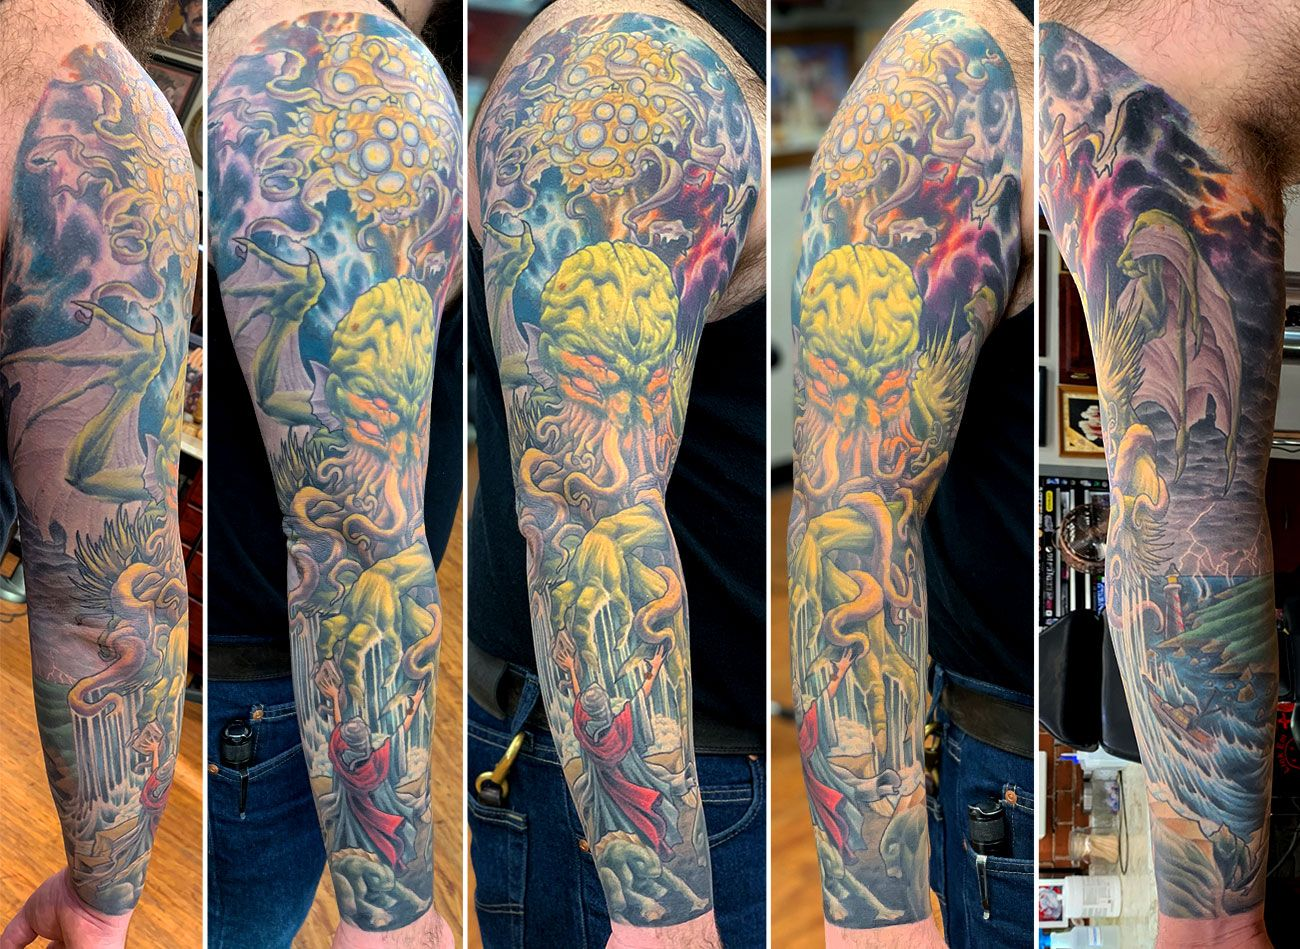 Awesome Hp Lovecraft Inspired Sleeve Done By John Kautz Hplovecraft Cthulhu Necronomicon Sleevetattoo J Cthulhu Tattoo Tattoo Artists American Traditional